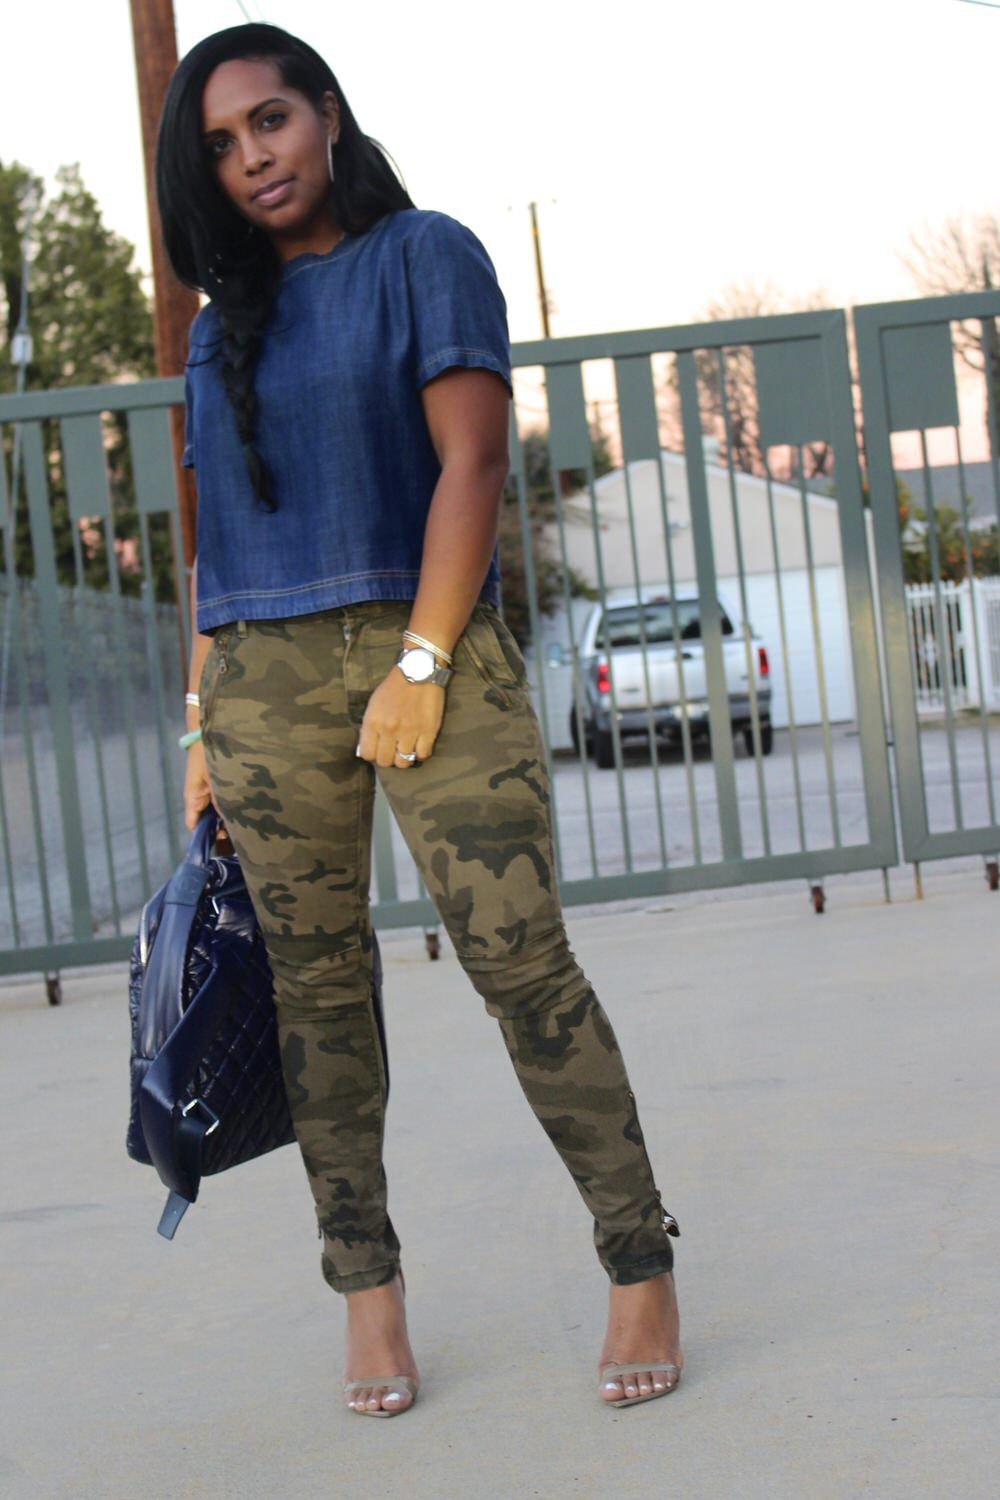 denim top with camouflage pants | major must haves | my street